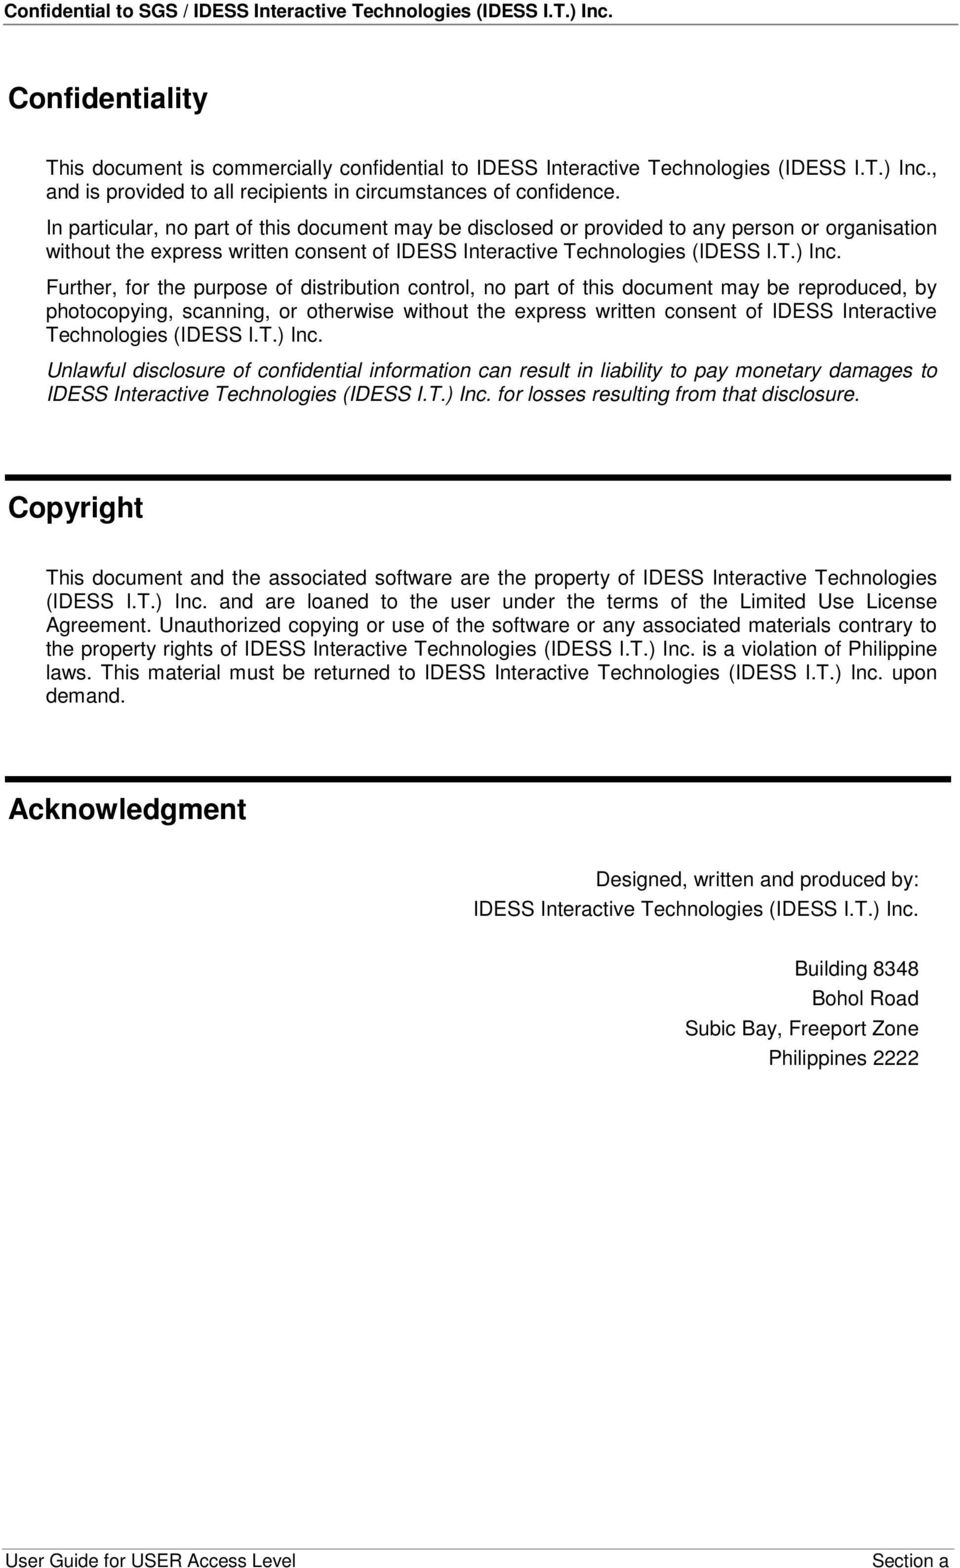 Further, for the purpose of distribution control, no part of this document may be reproduced, by photocopying, scanning, or otherwise without the express written consent of IDESS Interactive